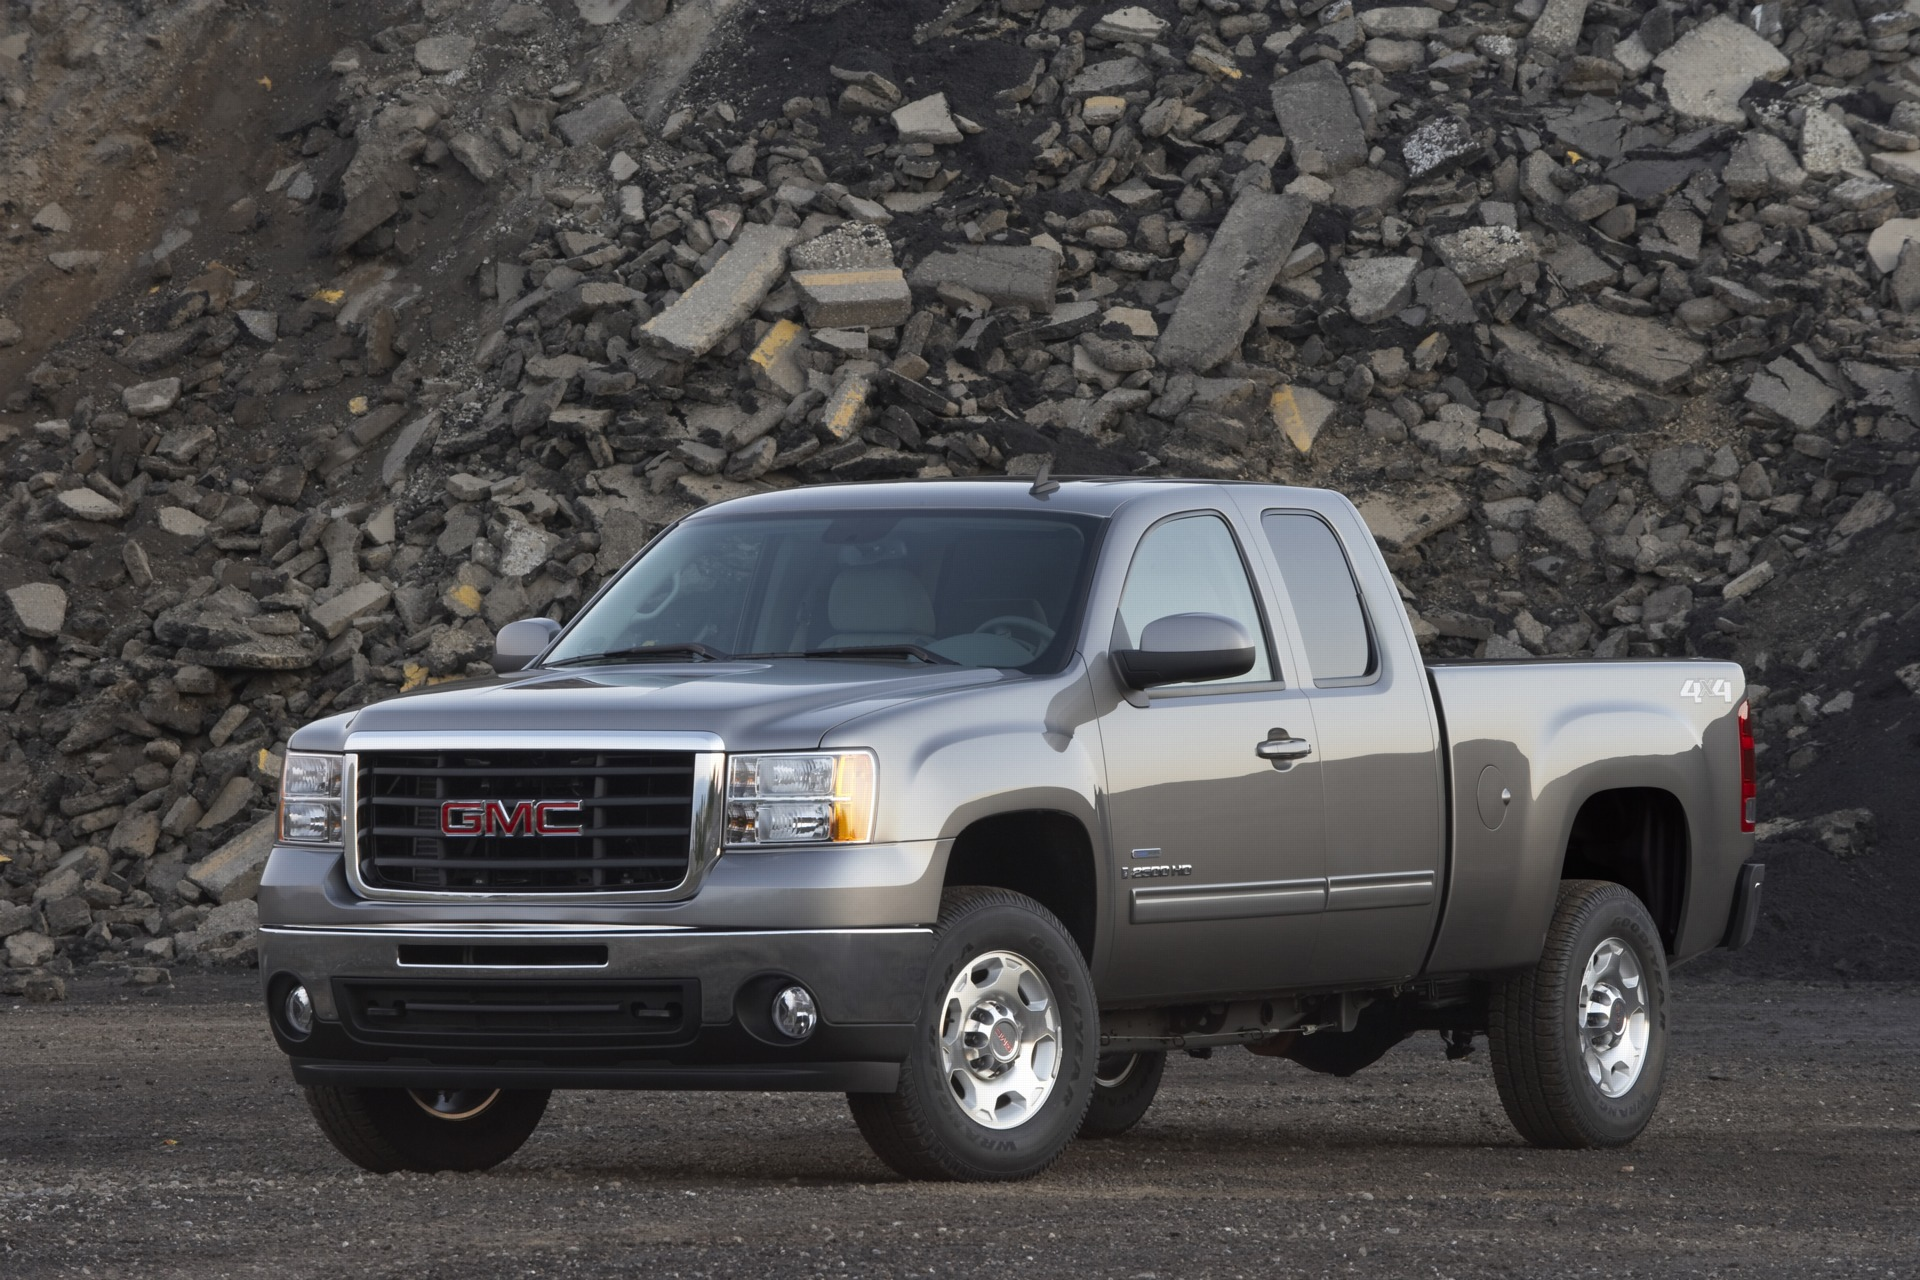 2008 gmc sierra 2500 hd. Black Bedroom Furniture Sets. Home Design Ideas